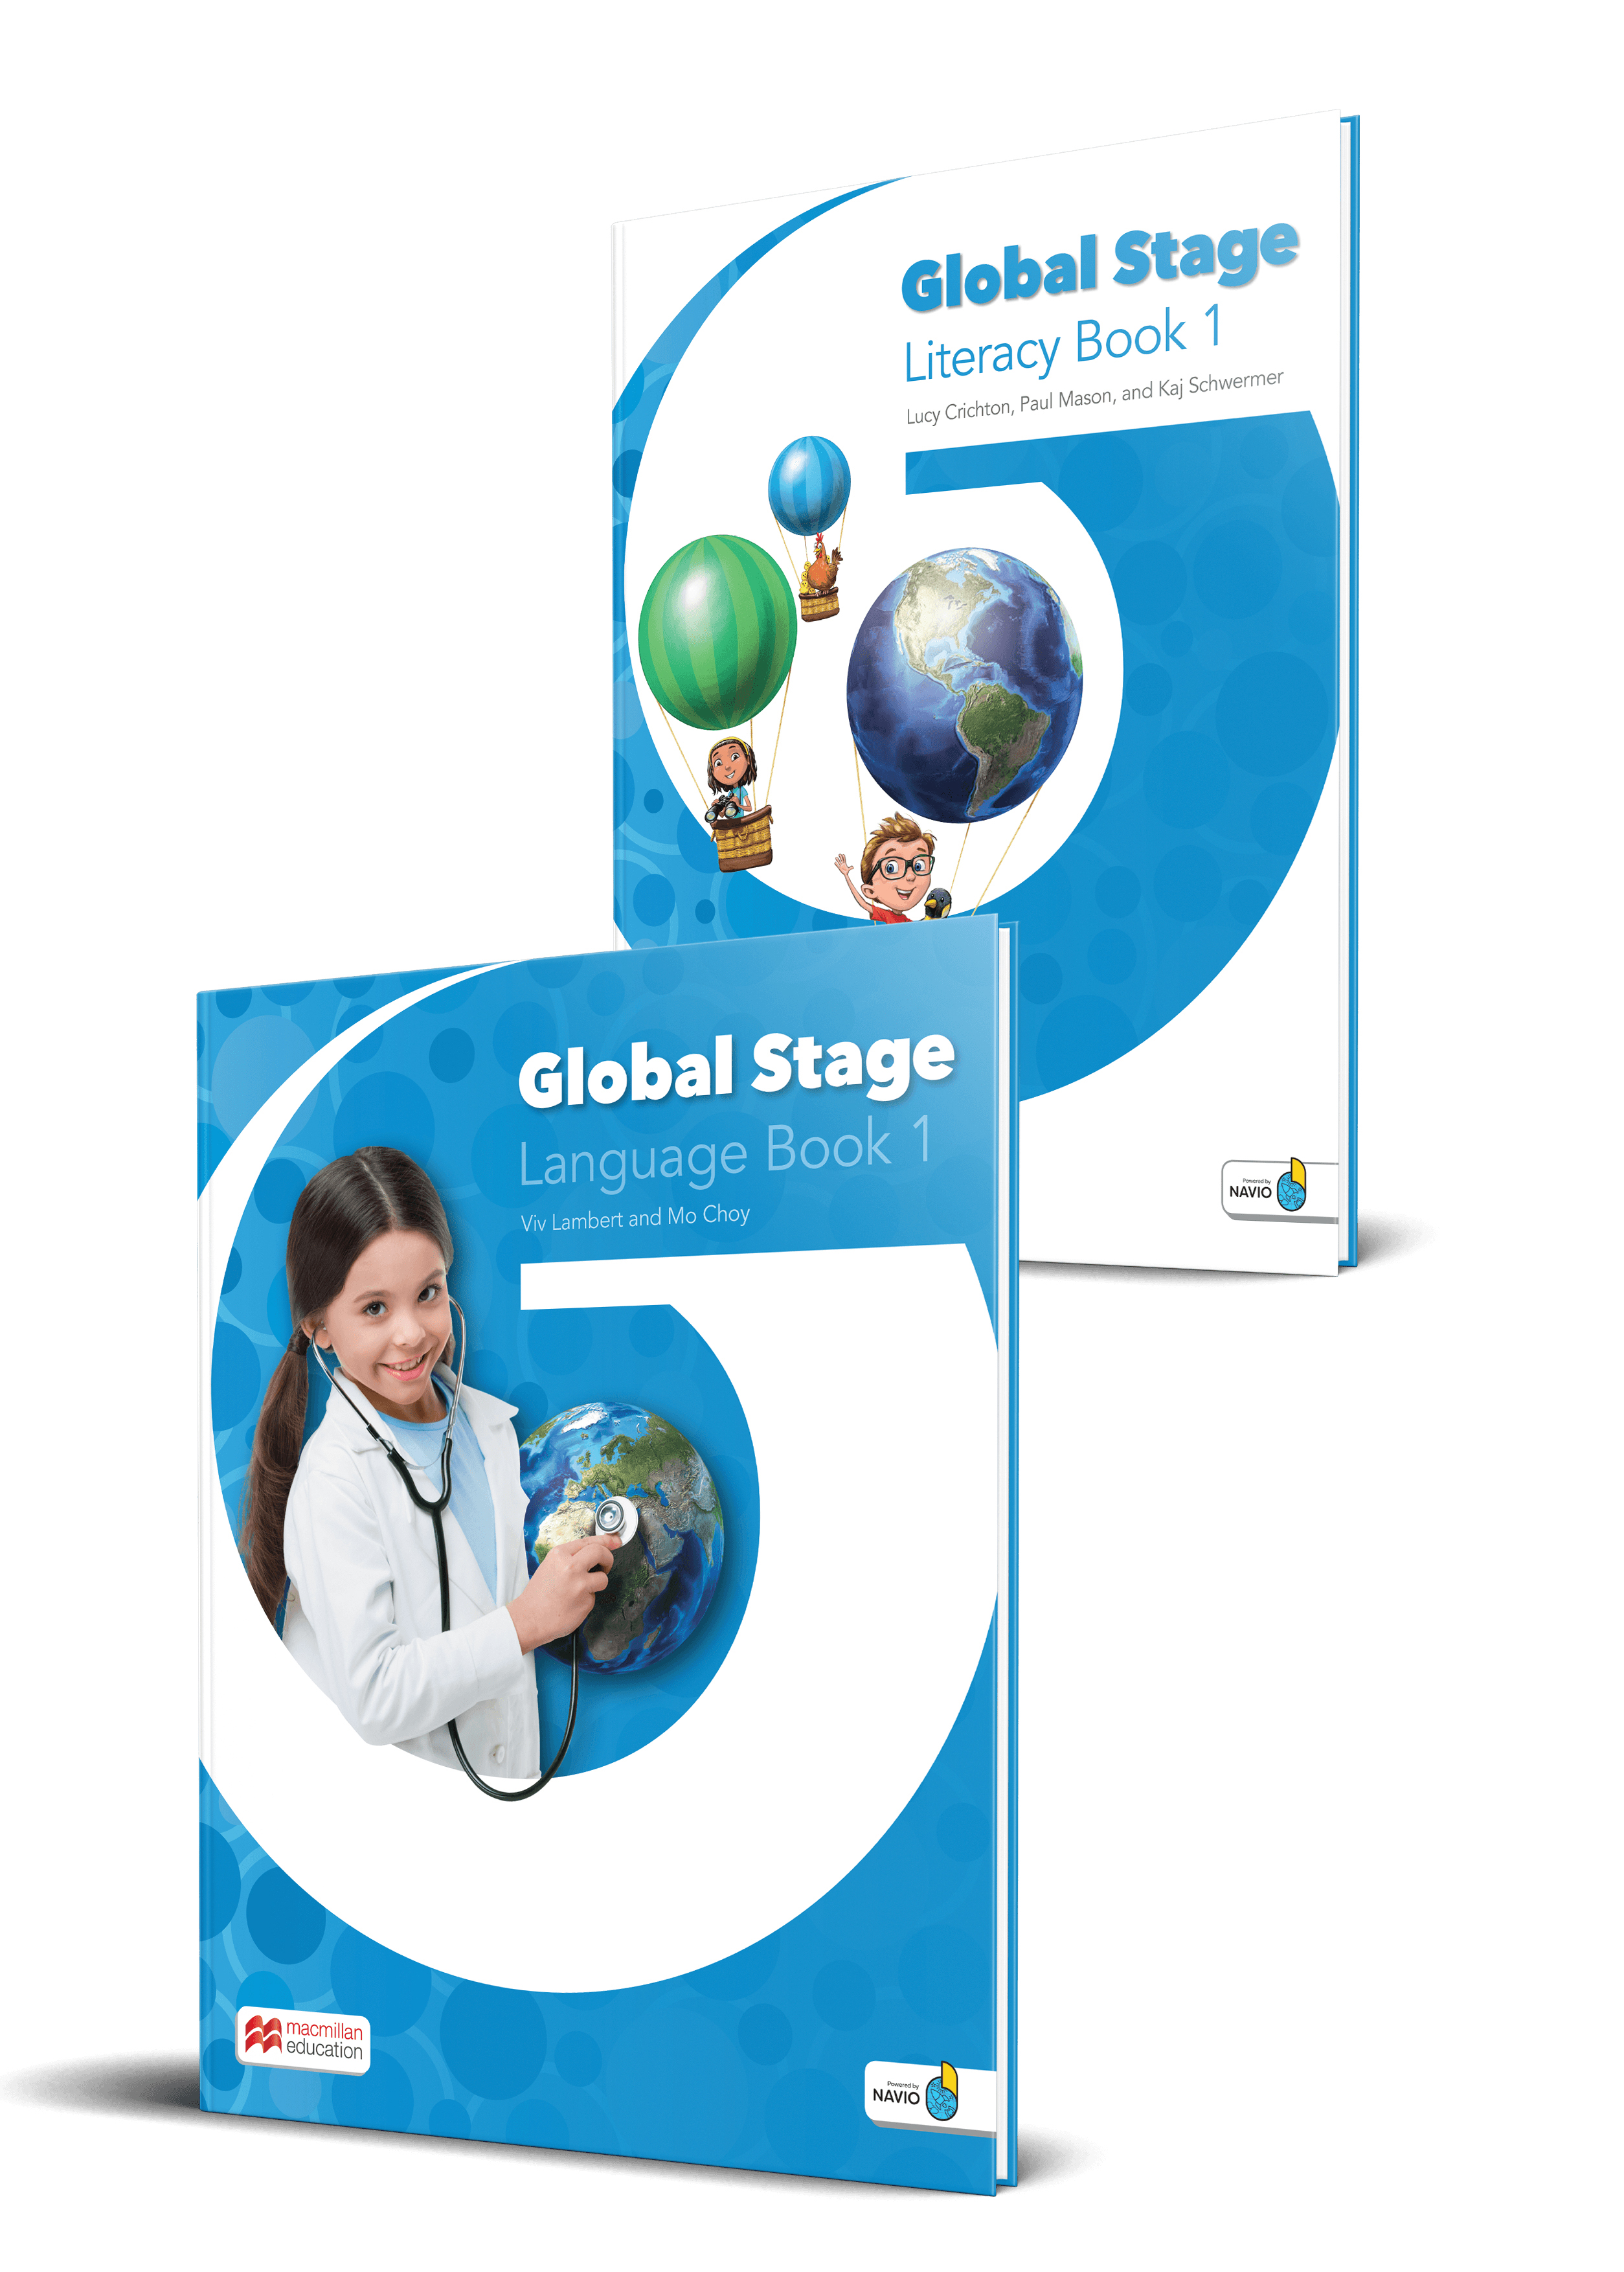 Global Stage Level 1 Literacy Book and Language Book with Navio App